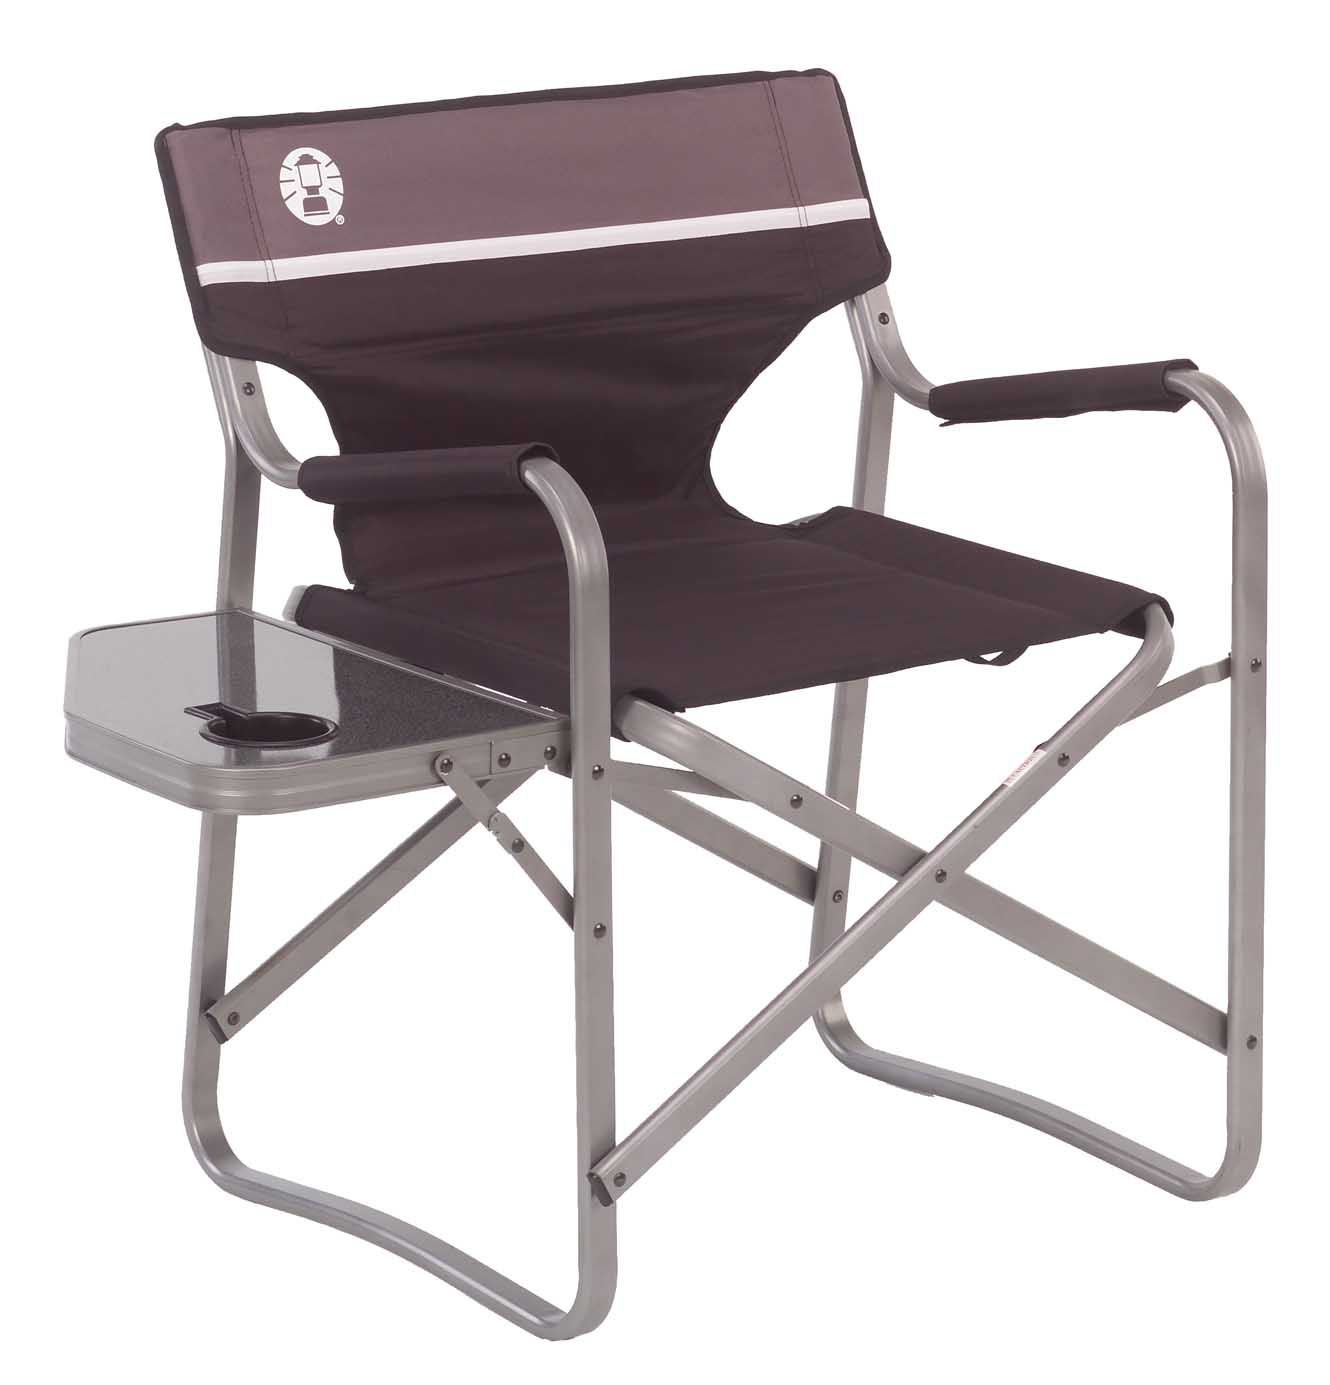 Medium image of aluminum deck chair